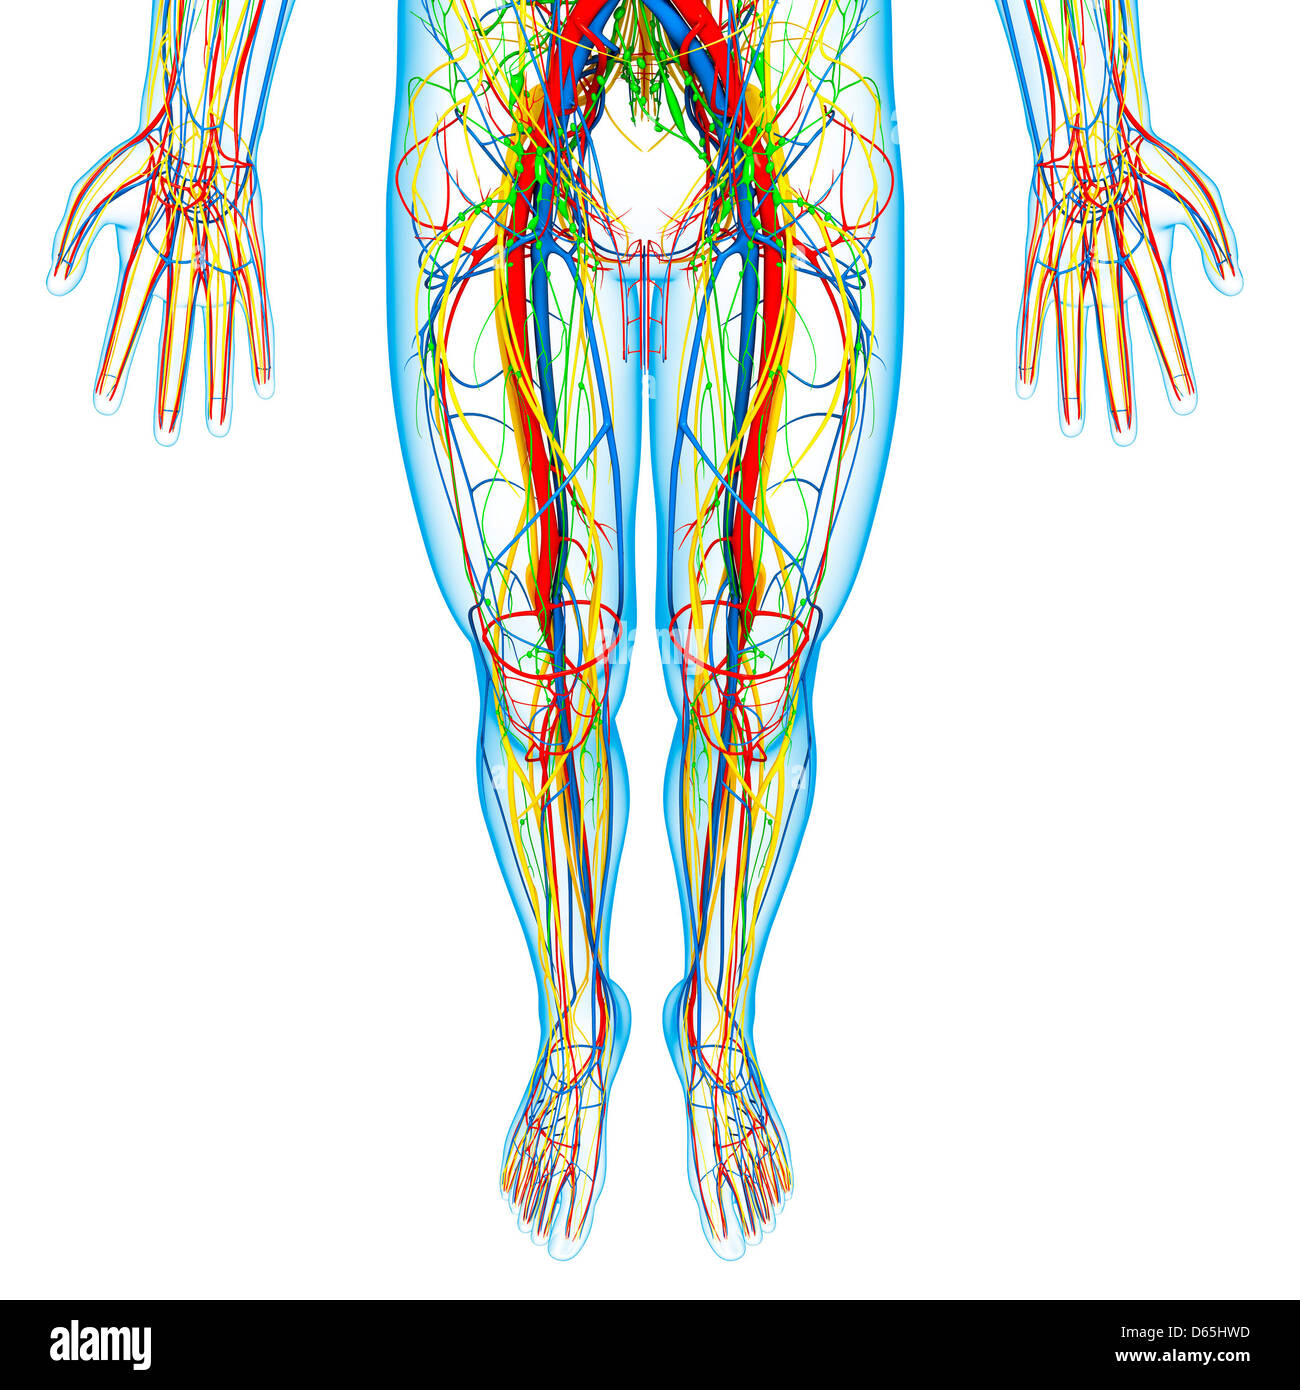 Lower Body Anatomy Artwork Stock Photo 55442841 Alamy